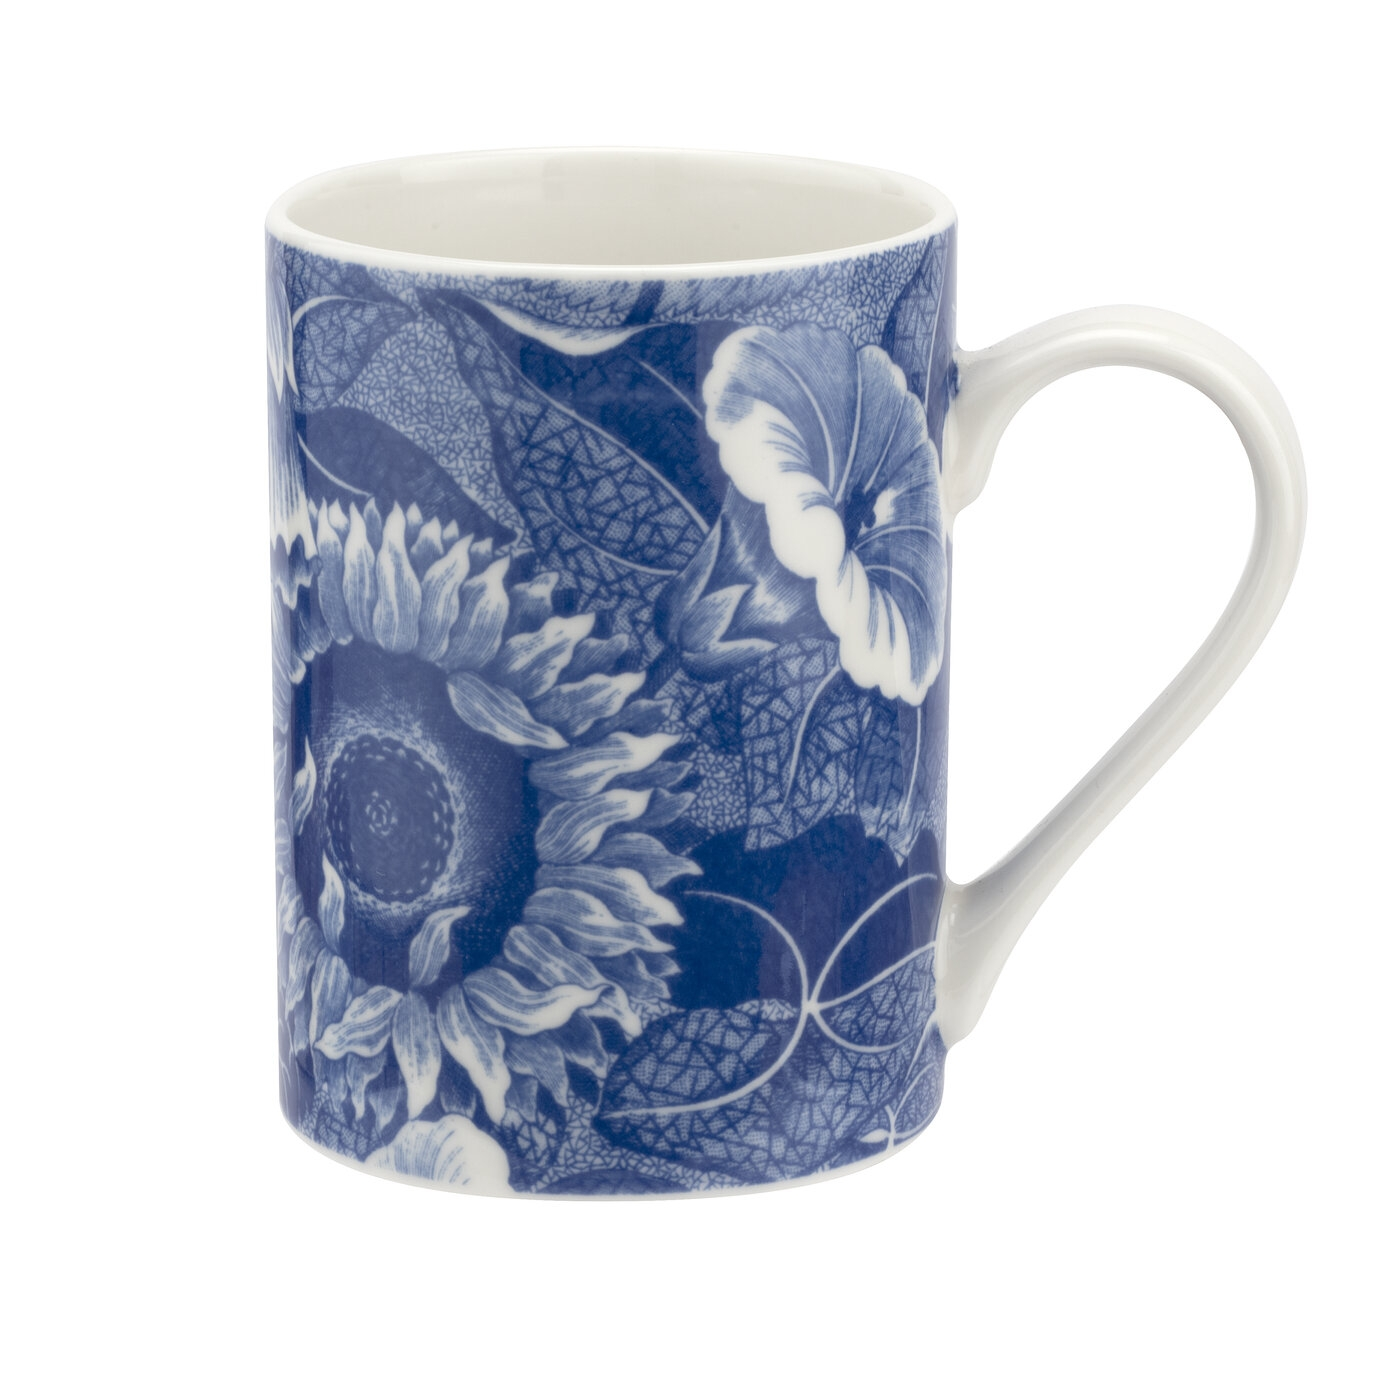 Pimpernel Blue Room Sunflower Set of 2 Mugs and Tray image number 1